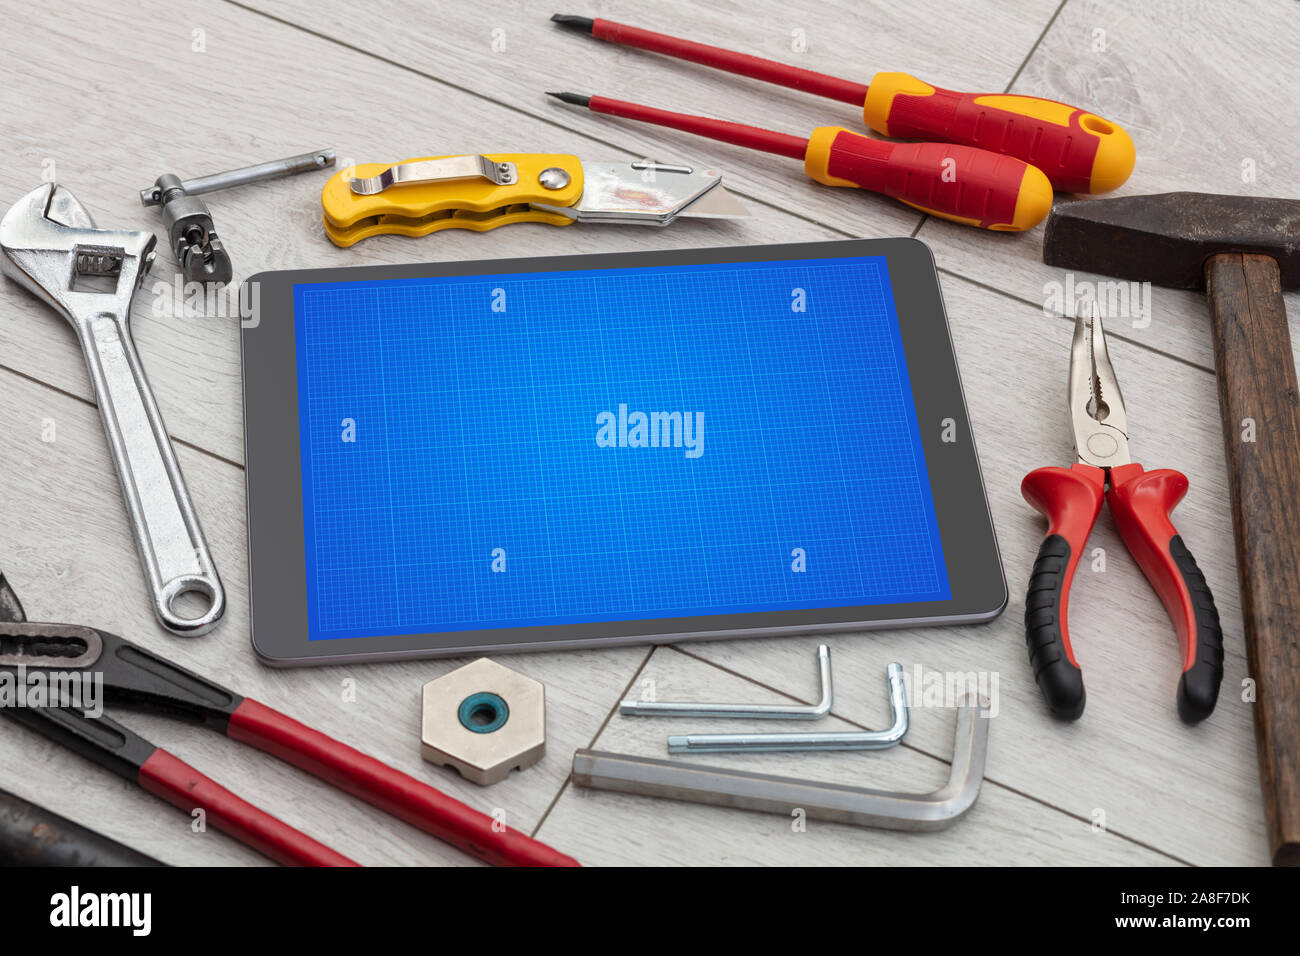 Household tools and tablet with grid screen concept Stock Photo